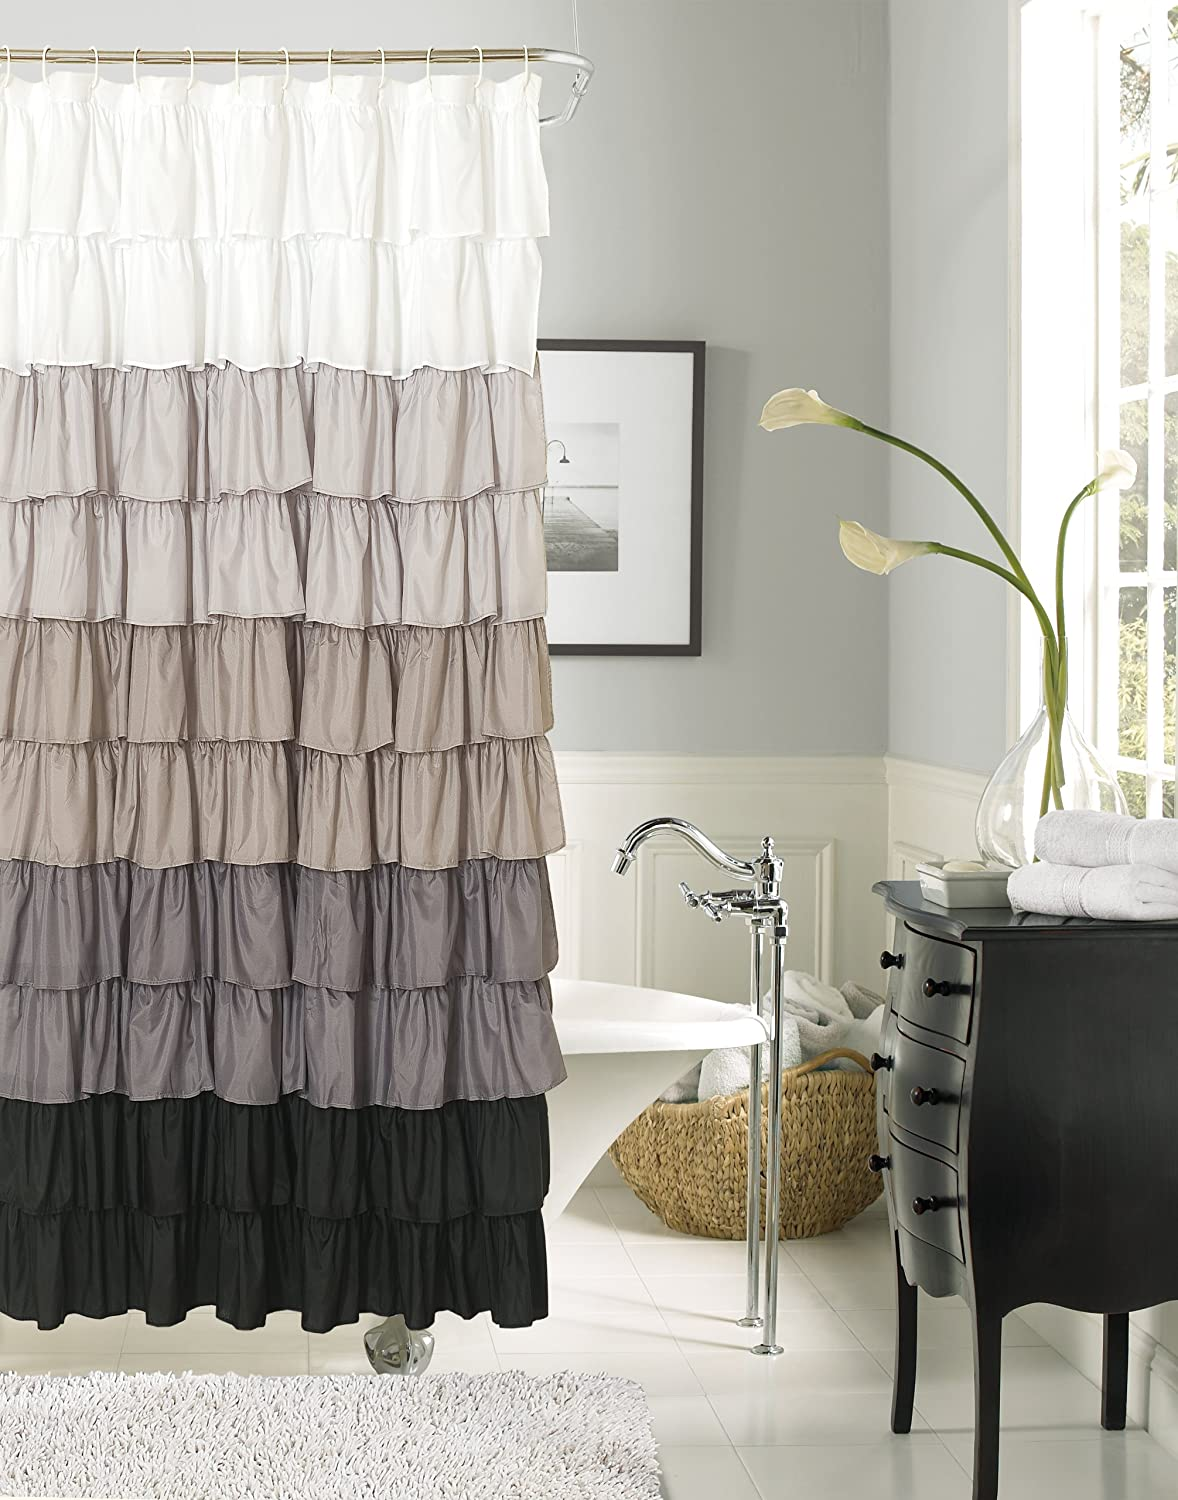 Amazon.com: Dainty Home Flamenco Ruffled Shower Curtain, 72 By 72 Inch,  Black/White: Home U0026 Kitchen